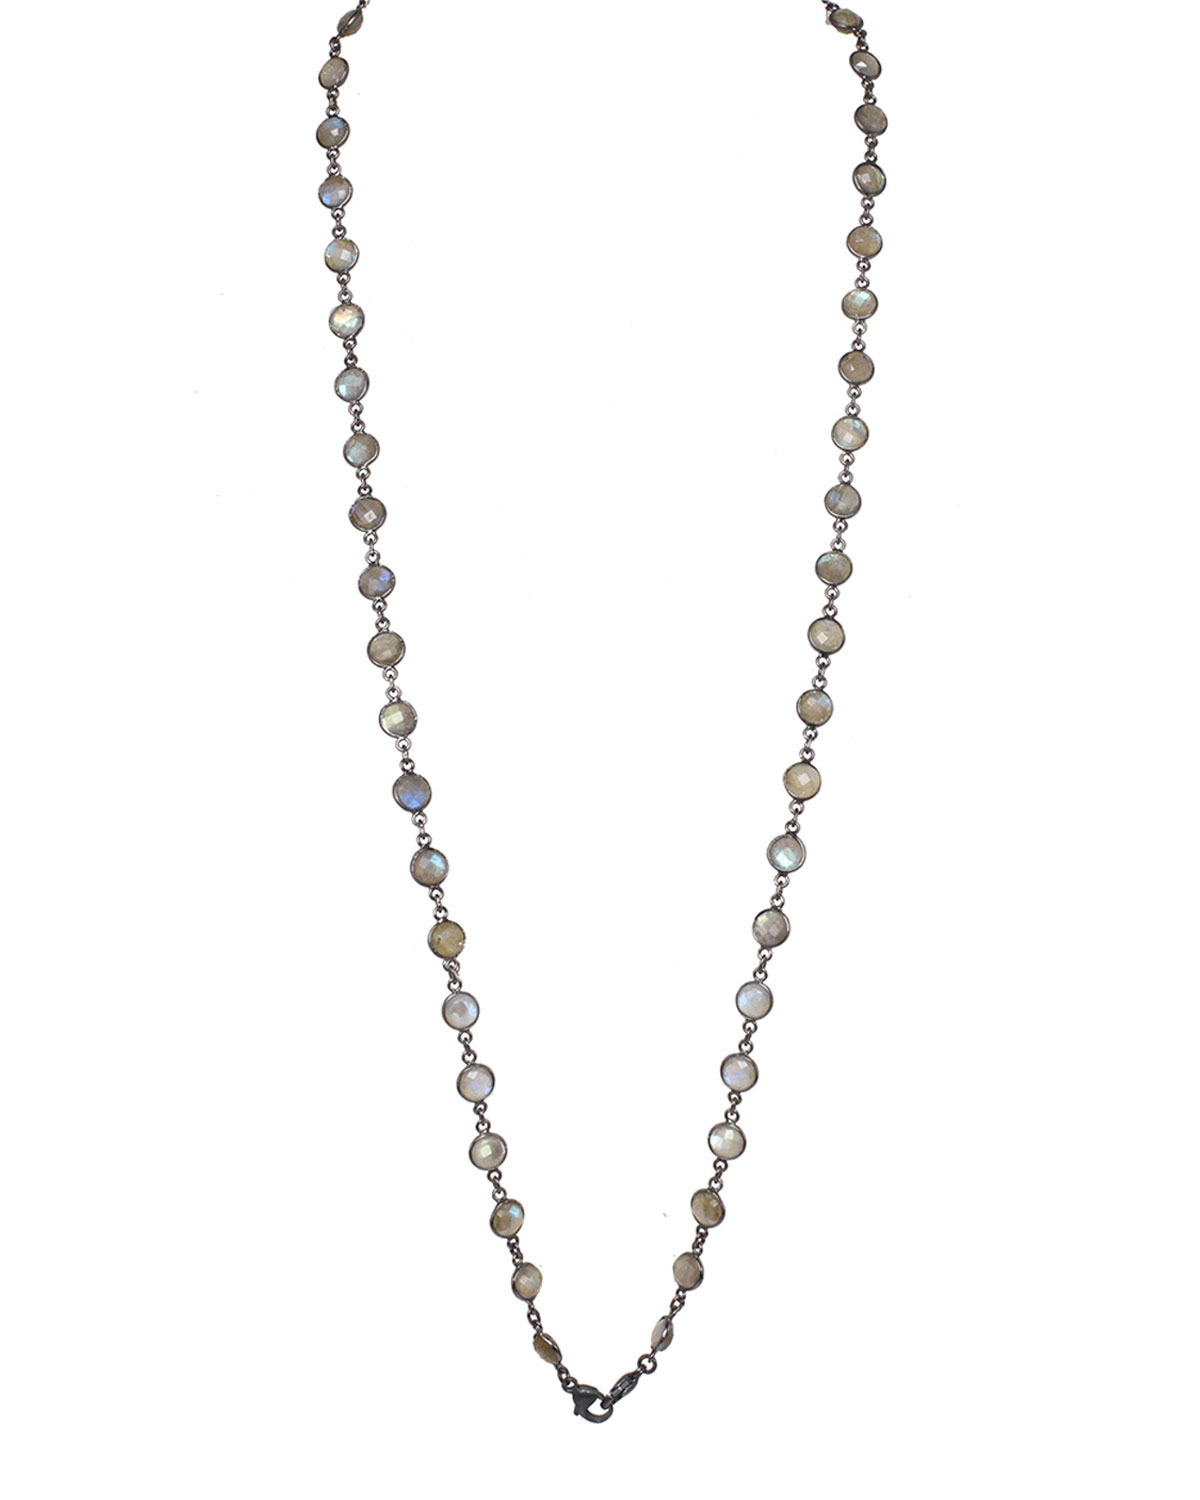 Faceted Labradorite Mask Chain/Necklace